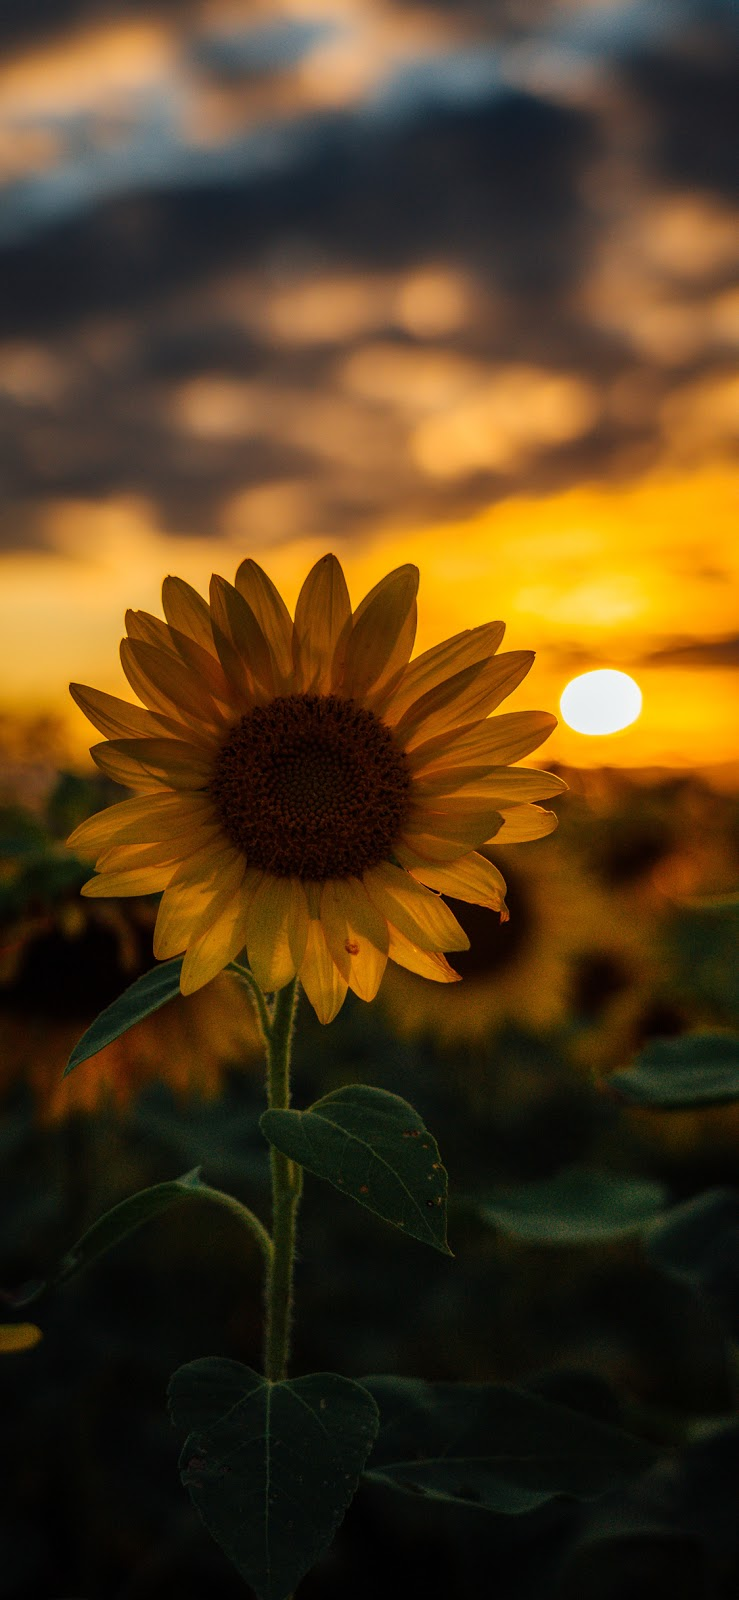 Sunflower Wallpaper Iphone X   Sunflower Background For Iphone 739x1600